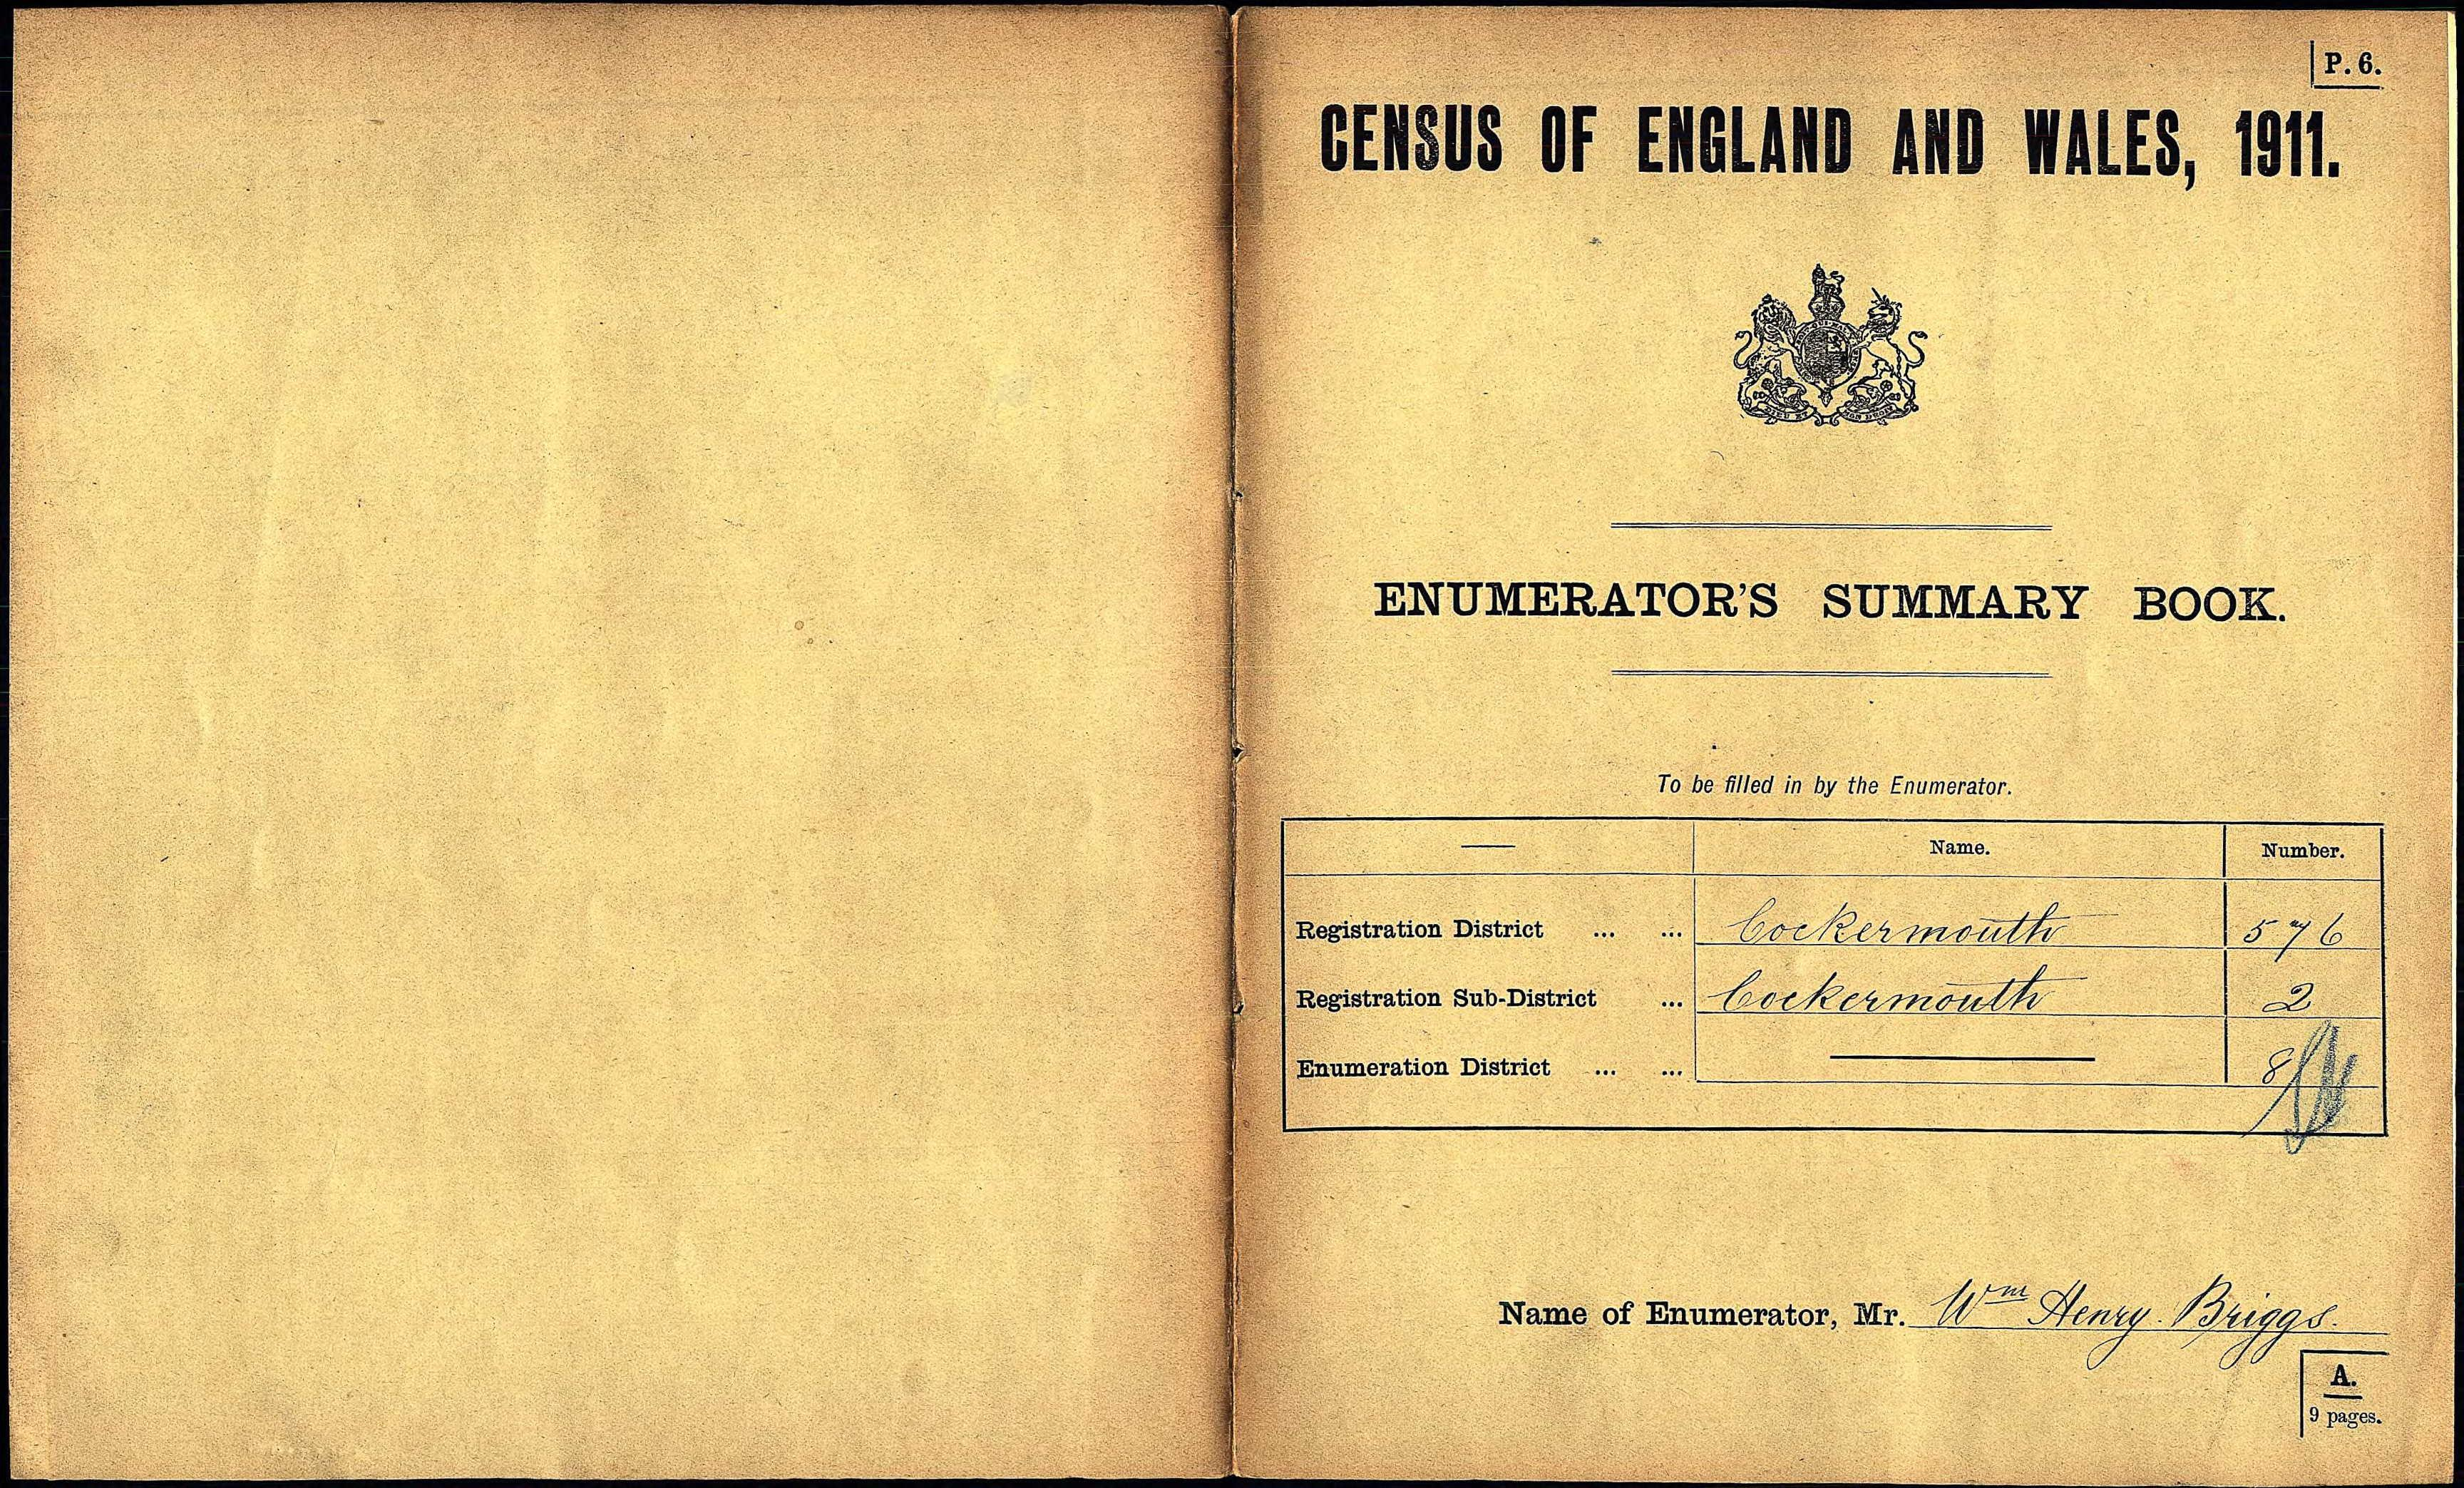 Bridekirk Census 1911